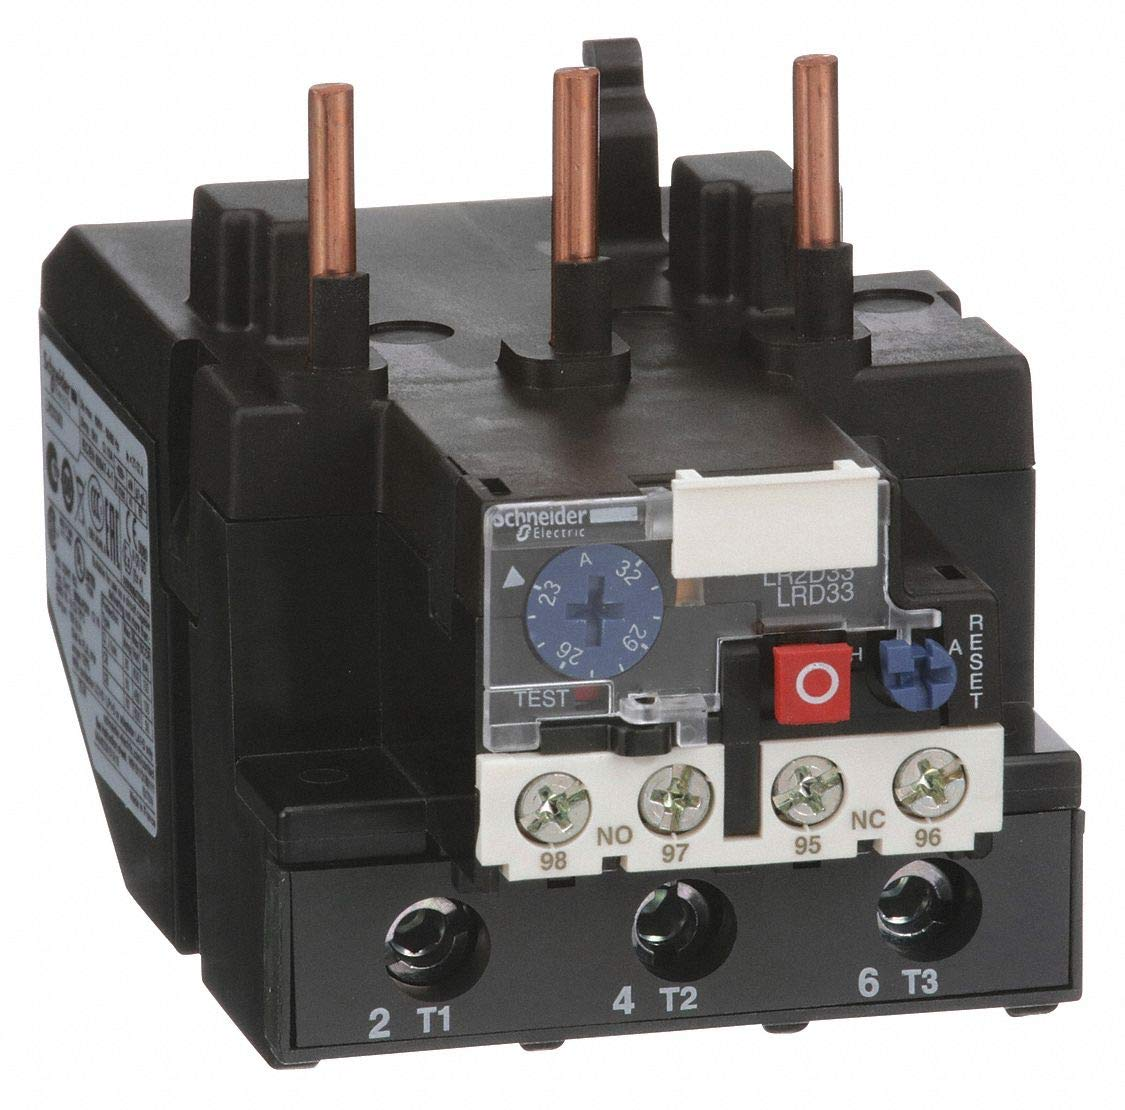 23 to 32A Class 10 690V 3P Ovrload Relay